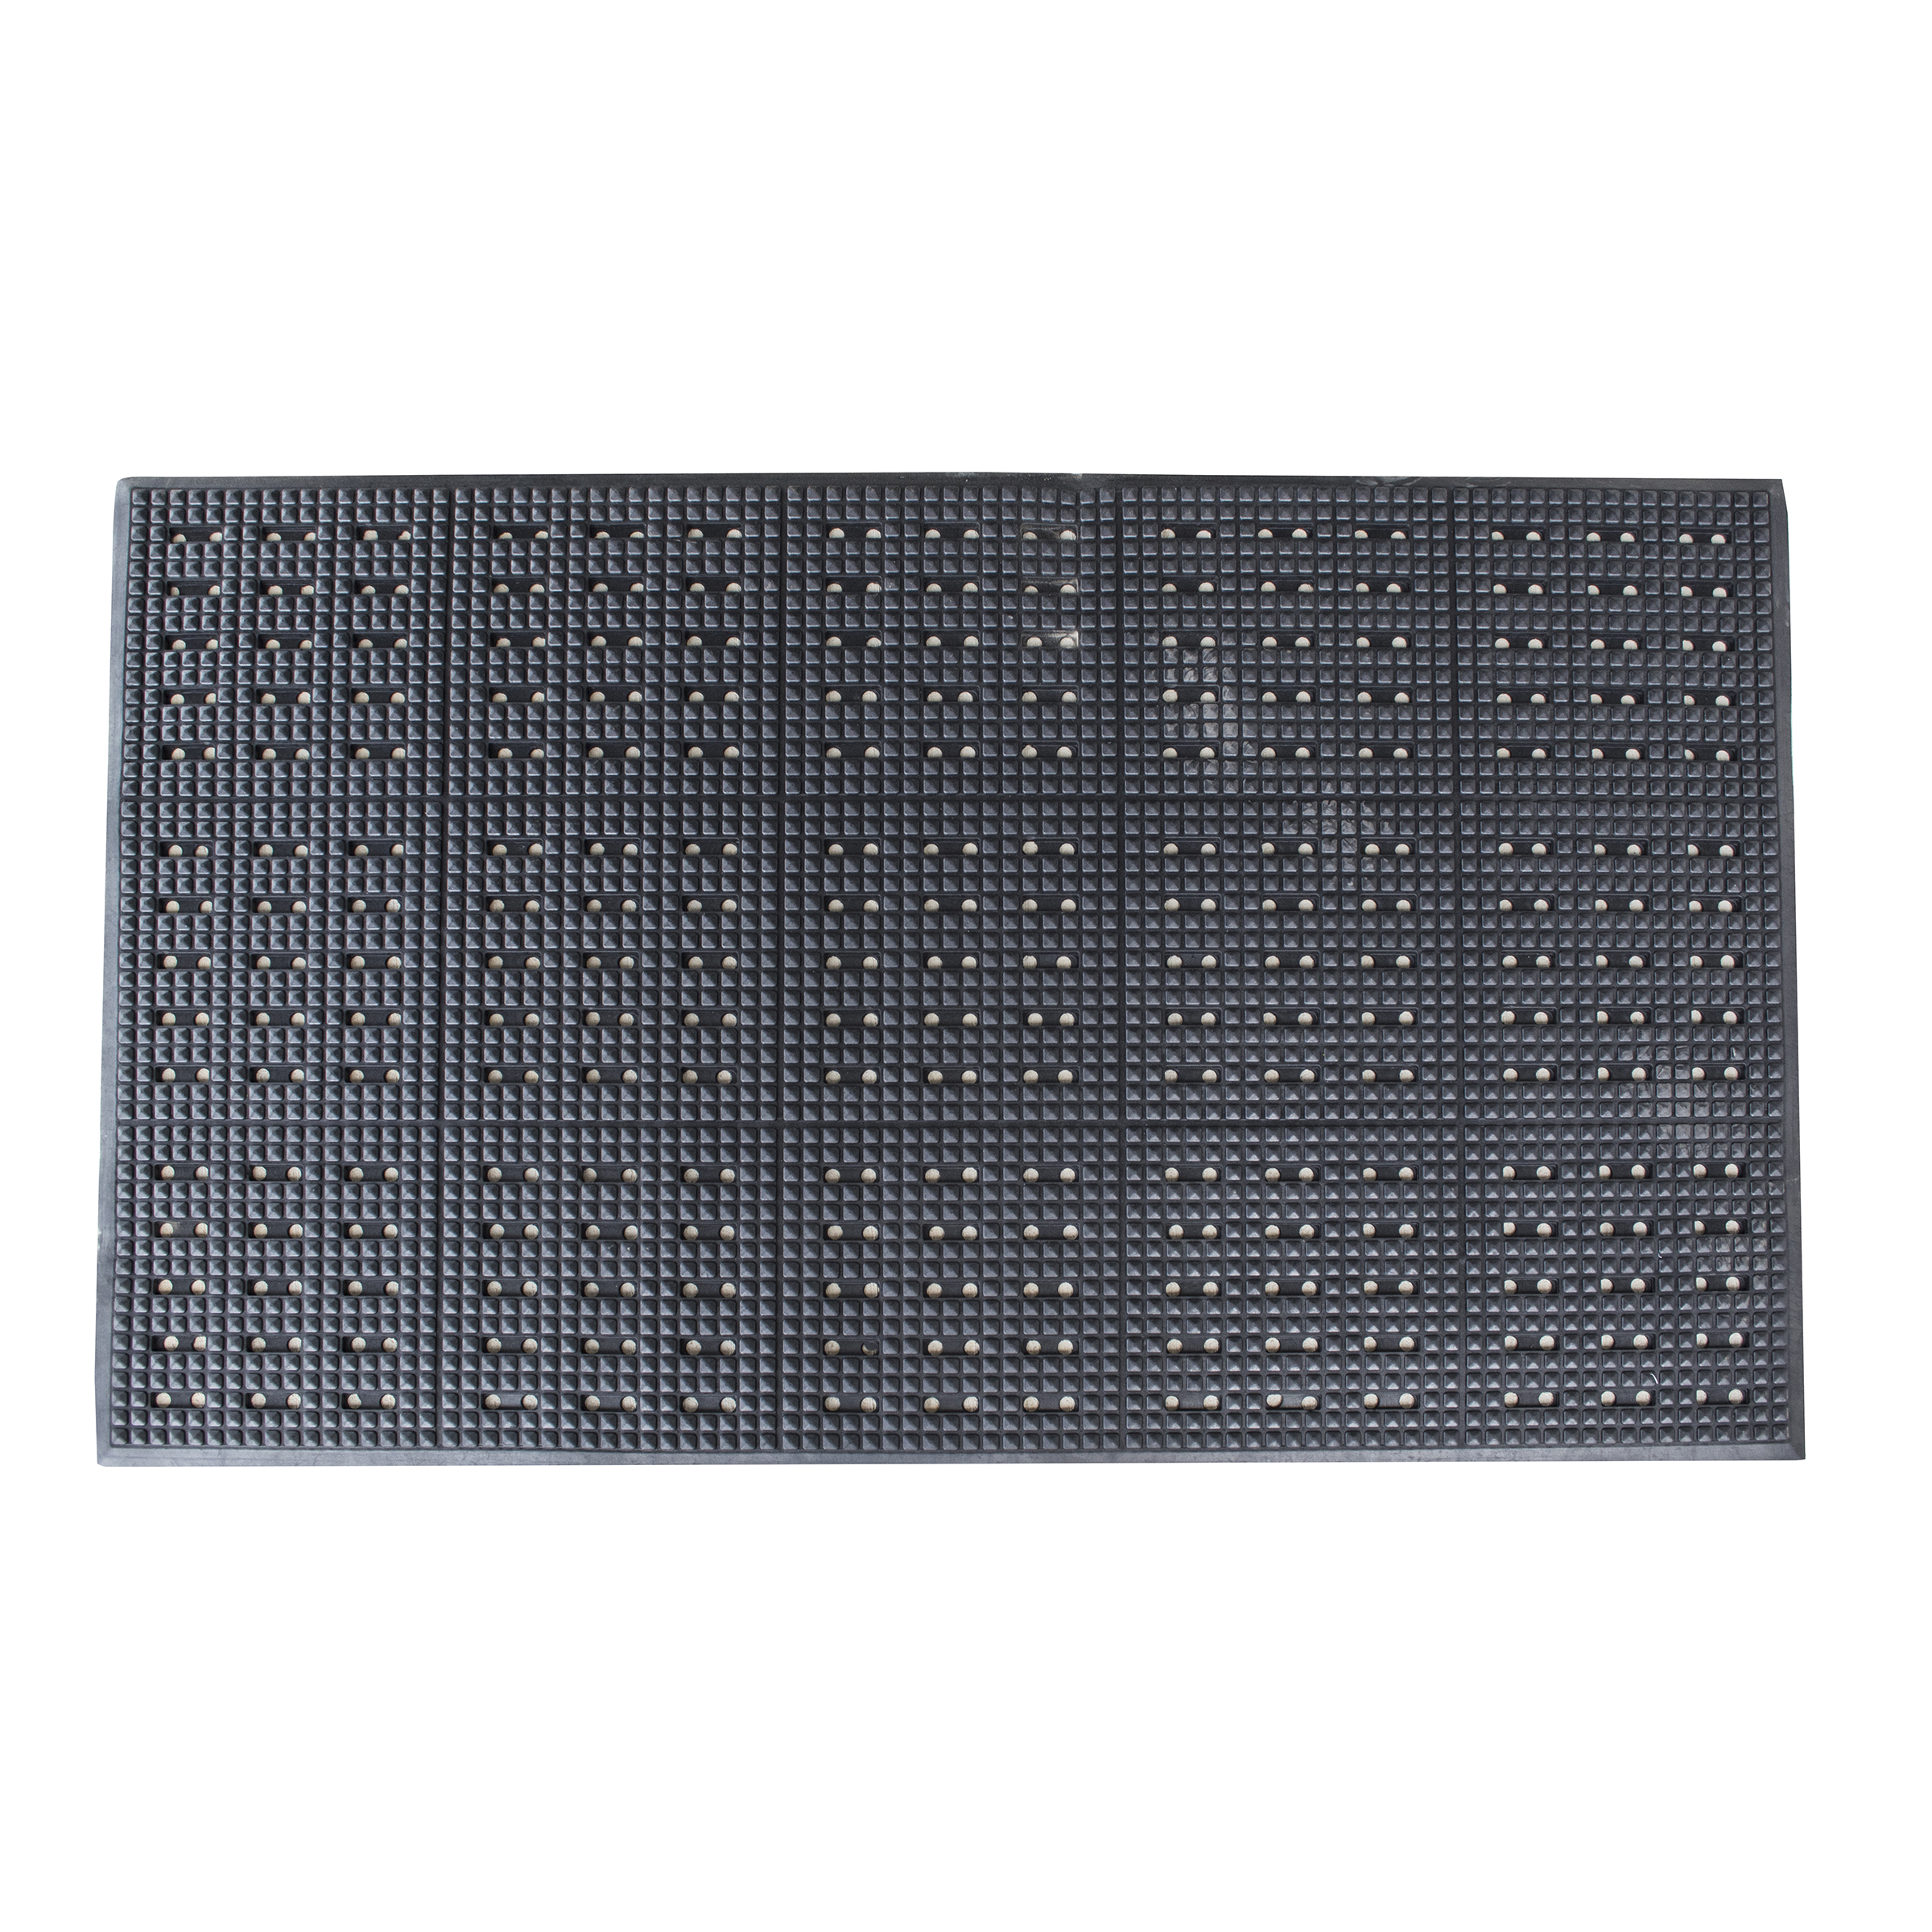 3 x 5 Foot Anti-Fatigue Rubber Mat